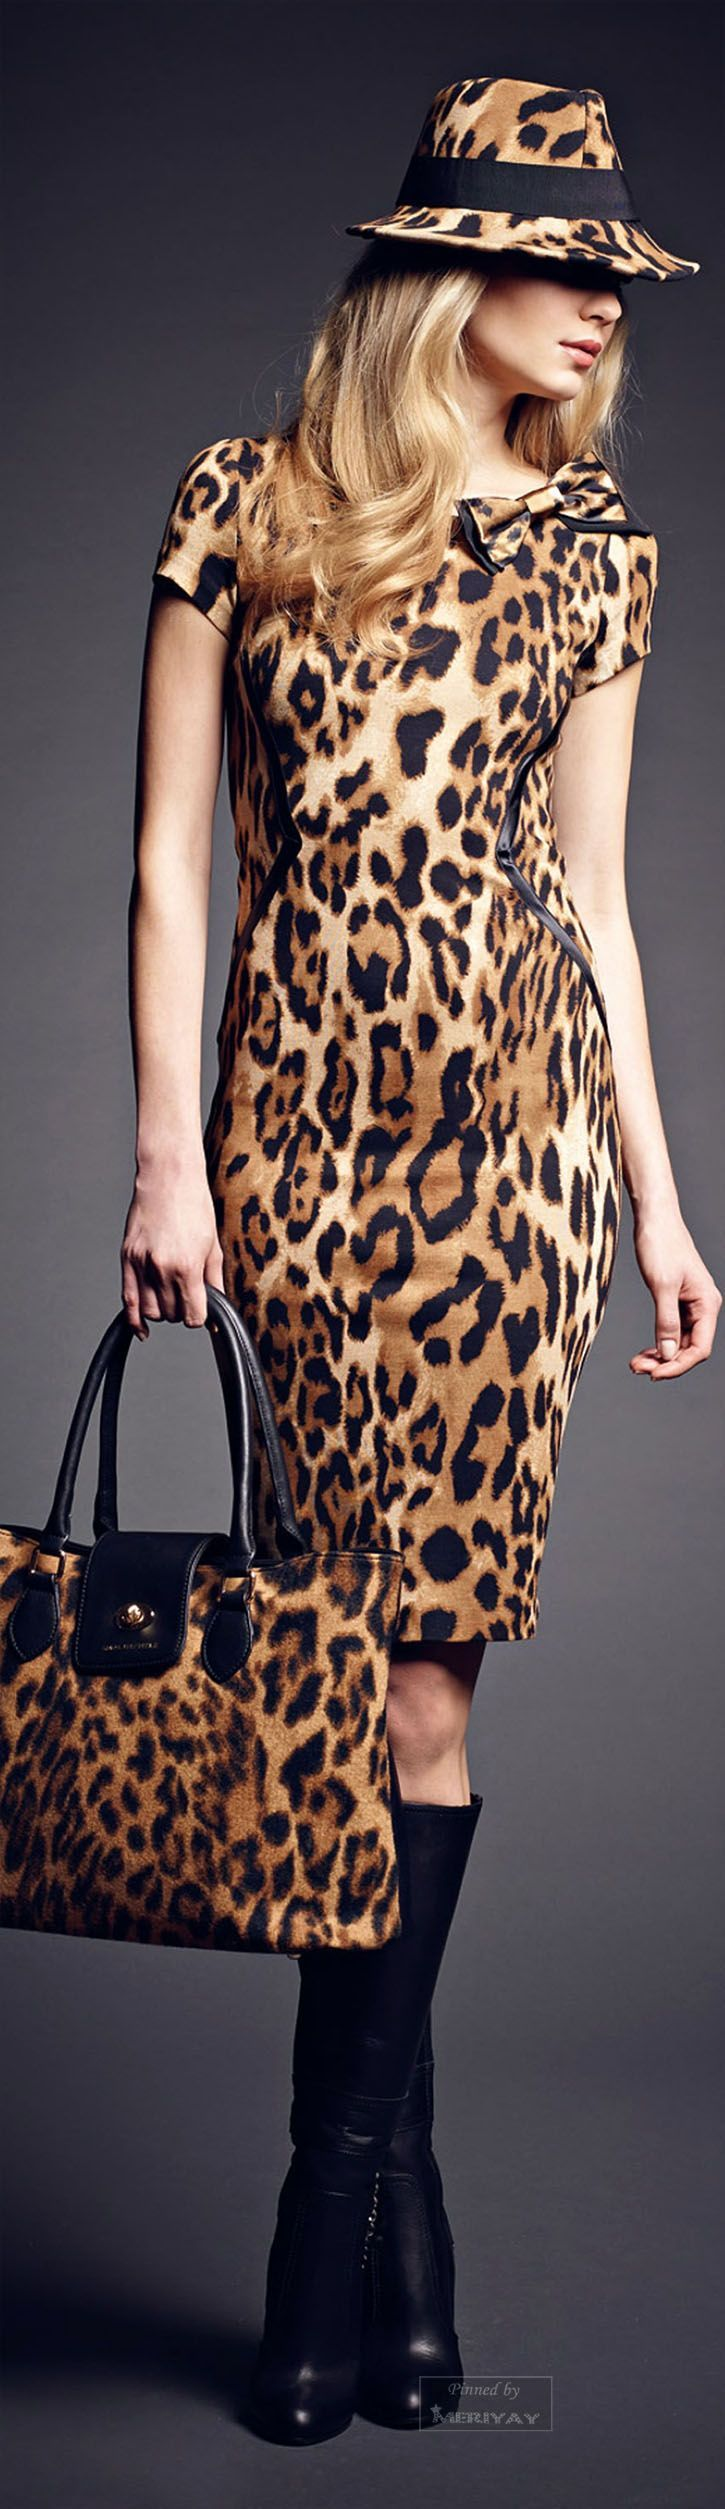 Trendy Animal Print Dress - Rachele Collections Fall 2015